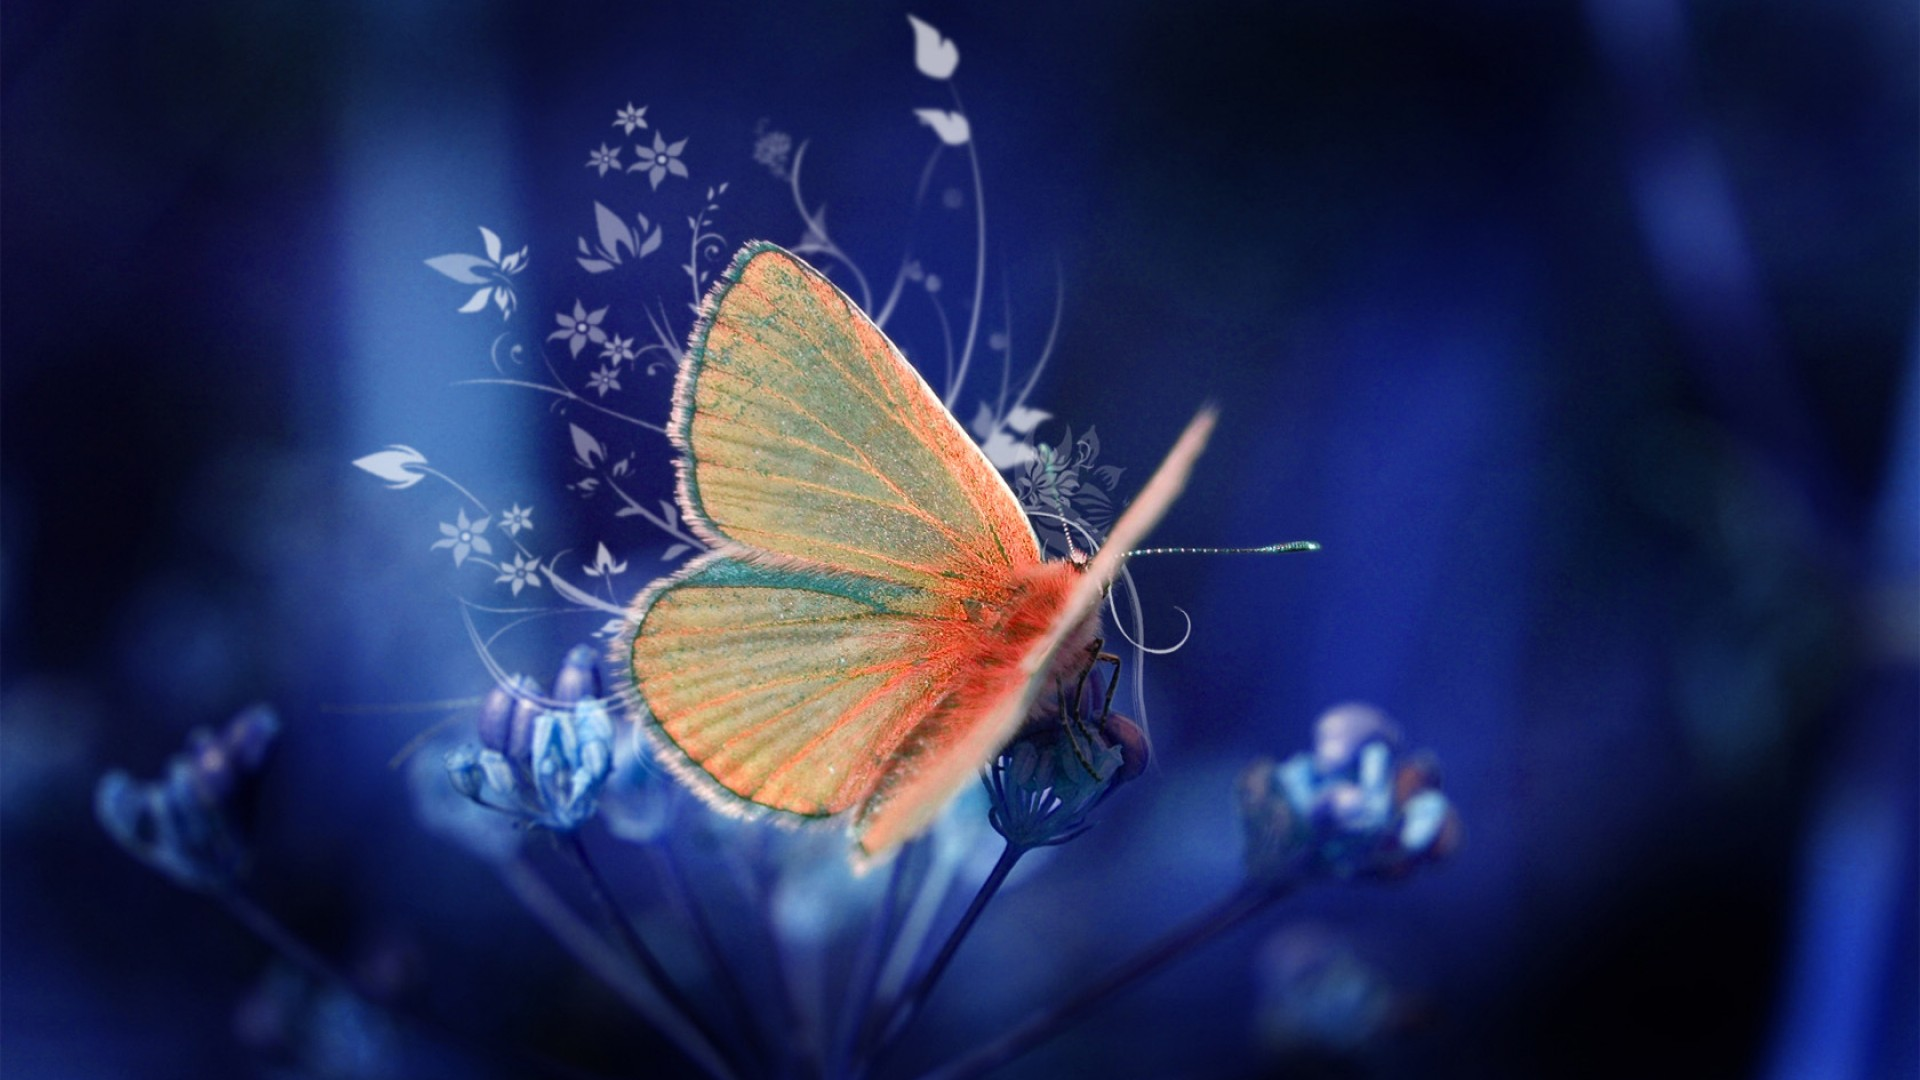 Butterfly Wallpaper HD 1920x1080 ImageBankbiz 1920x1080